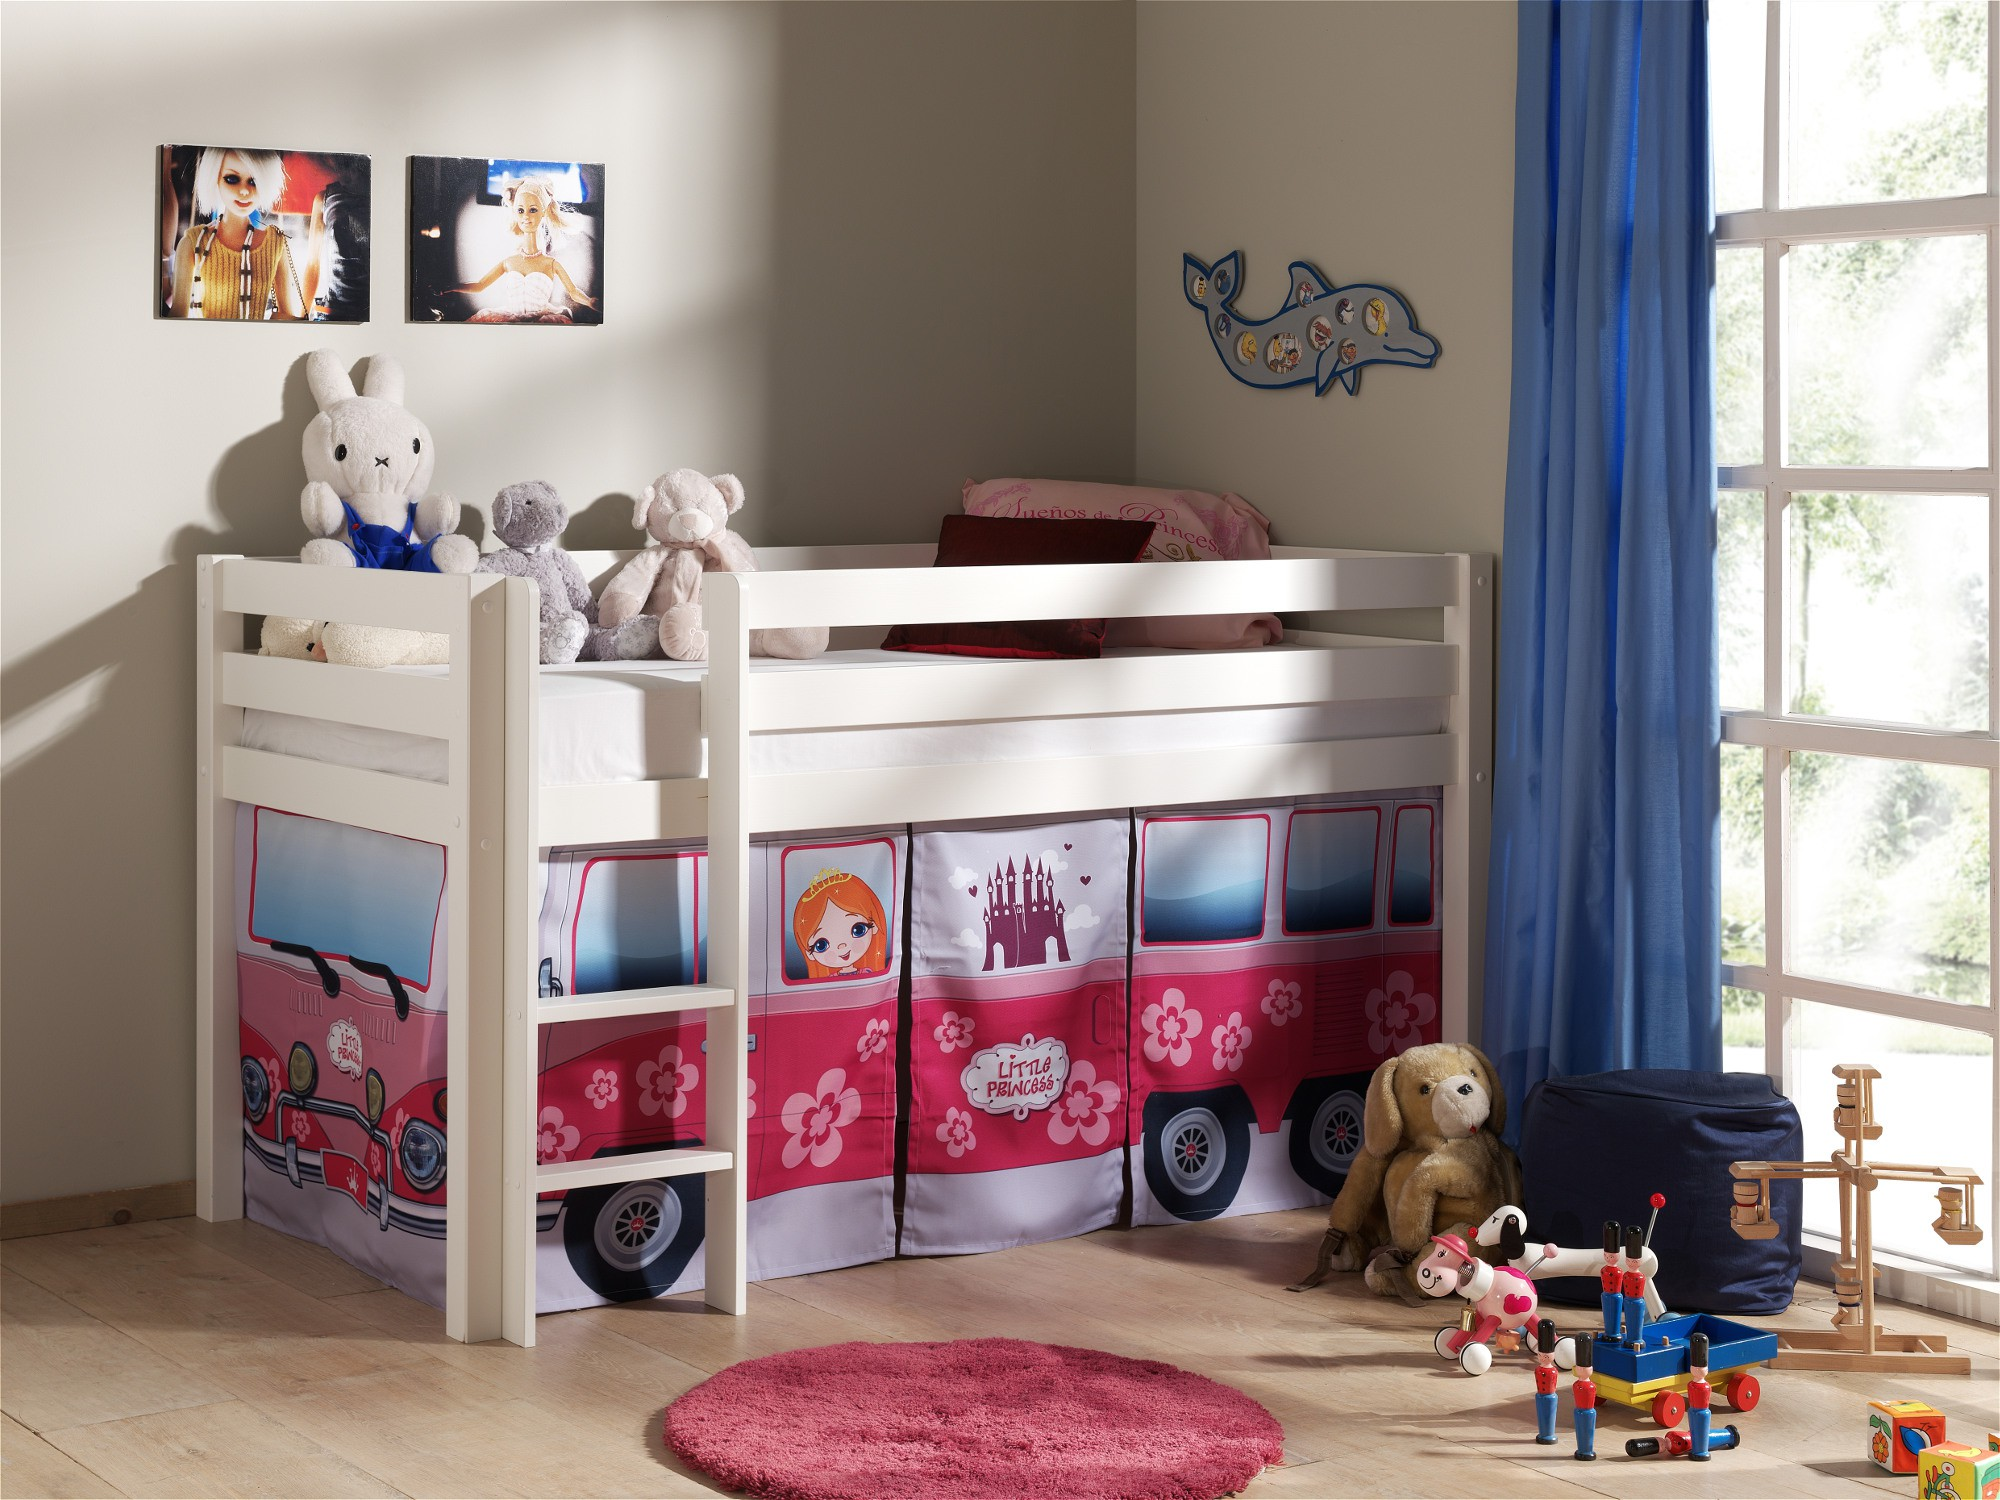 spielbett pino flower bus liegefl che 90 x 200 cm kiefer wei massiv kinder jugendzimmer. Black Bedroom Furniture Sets. Home Design Ideas